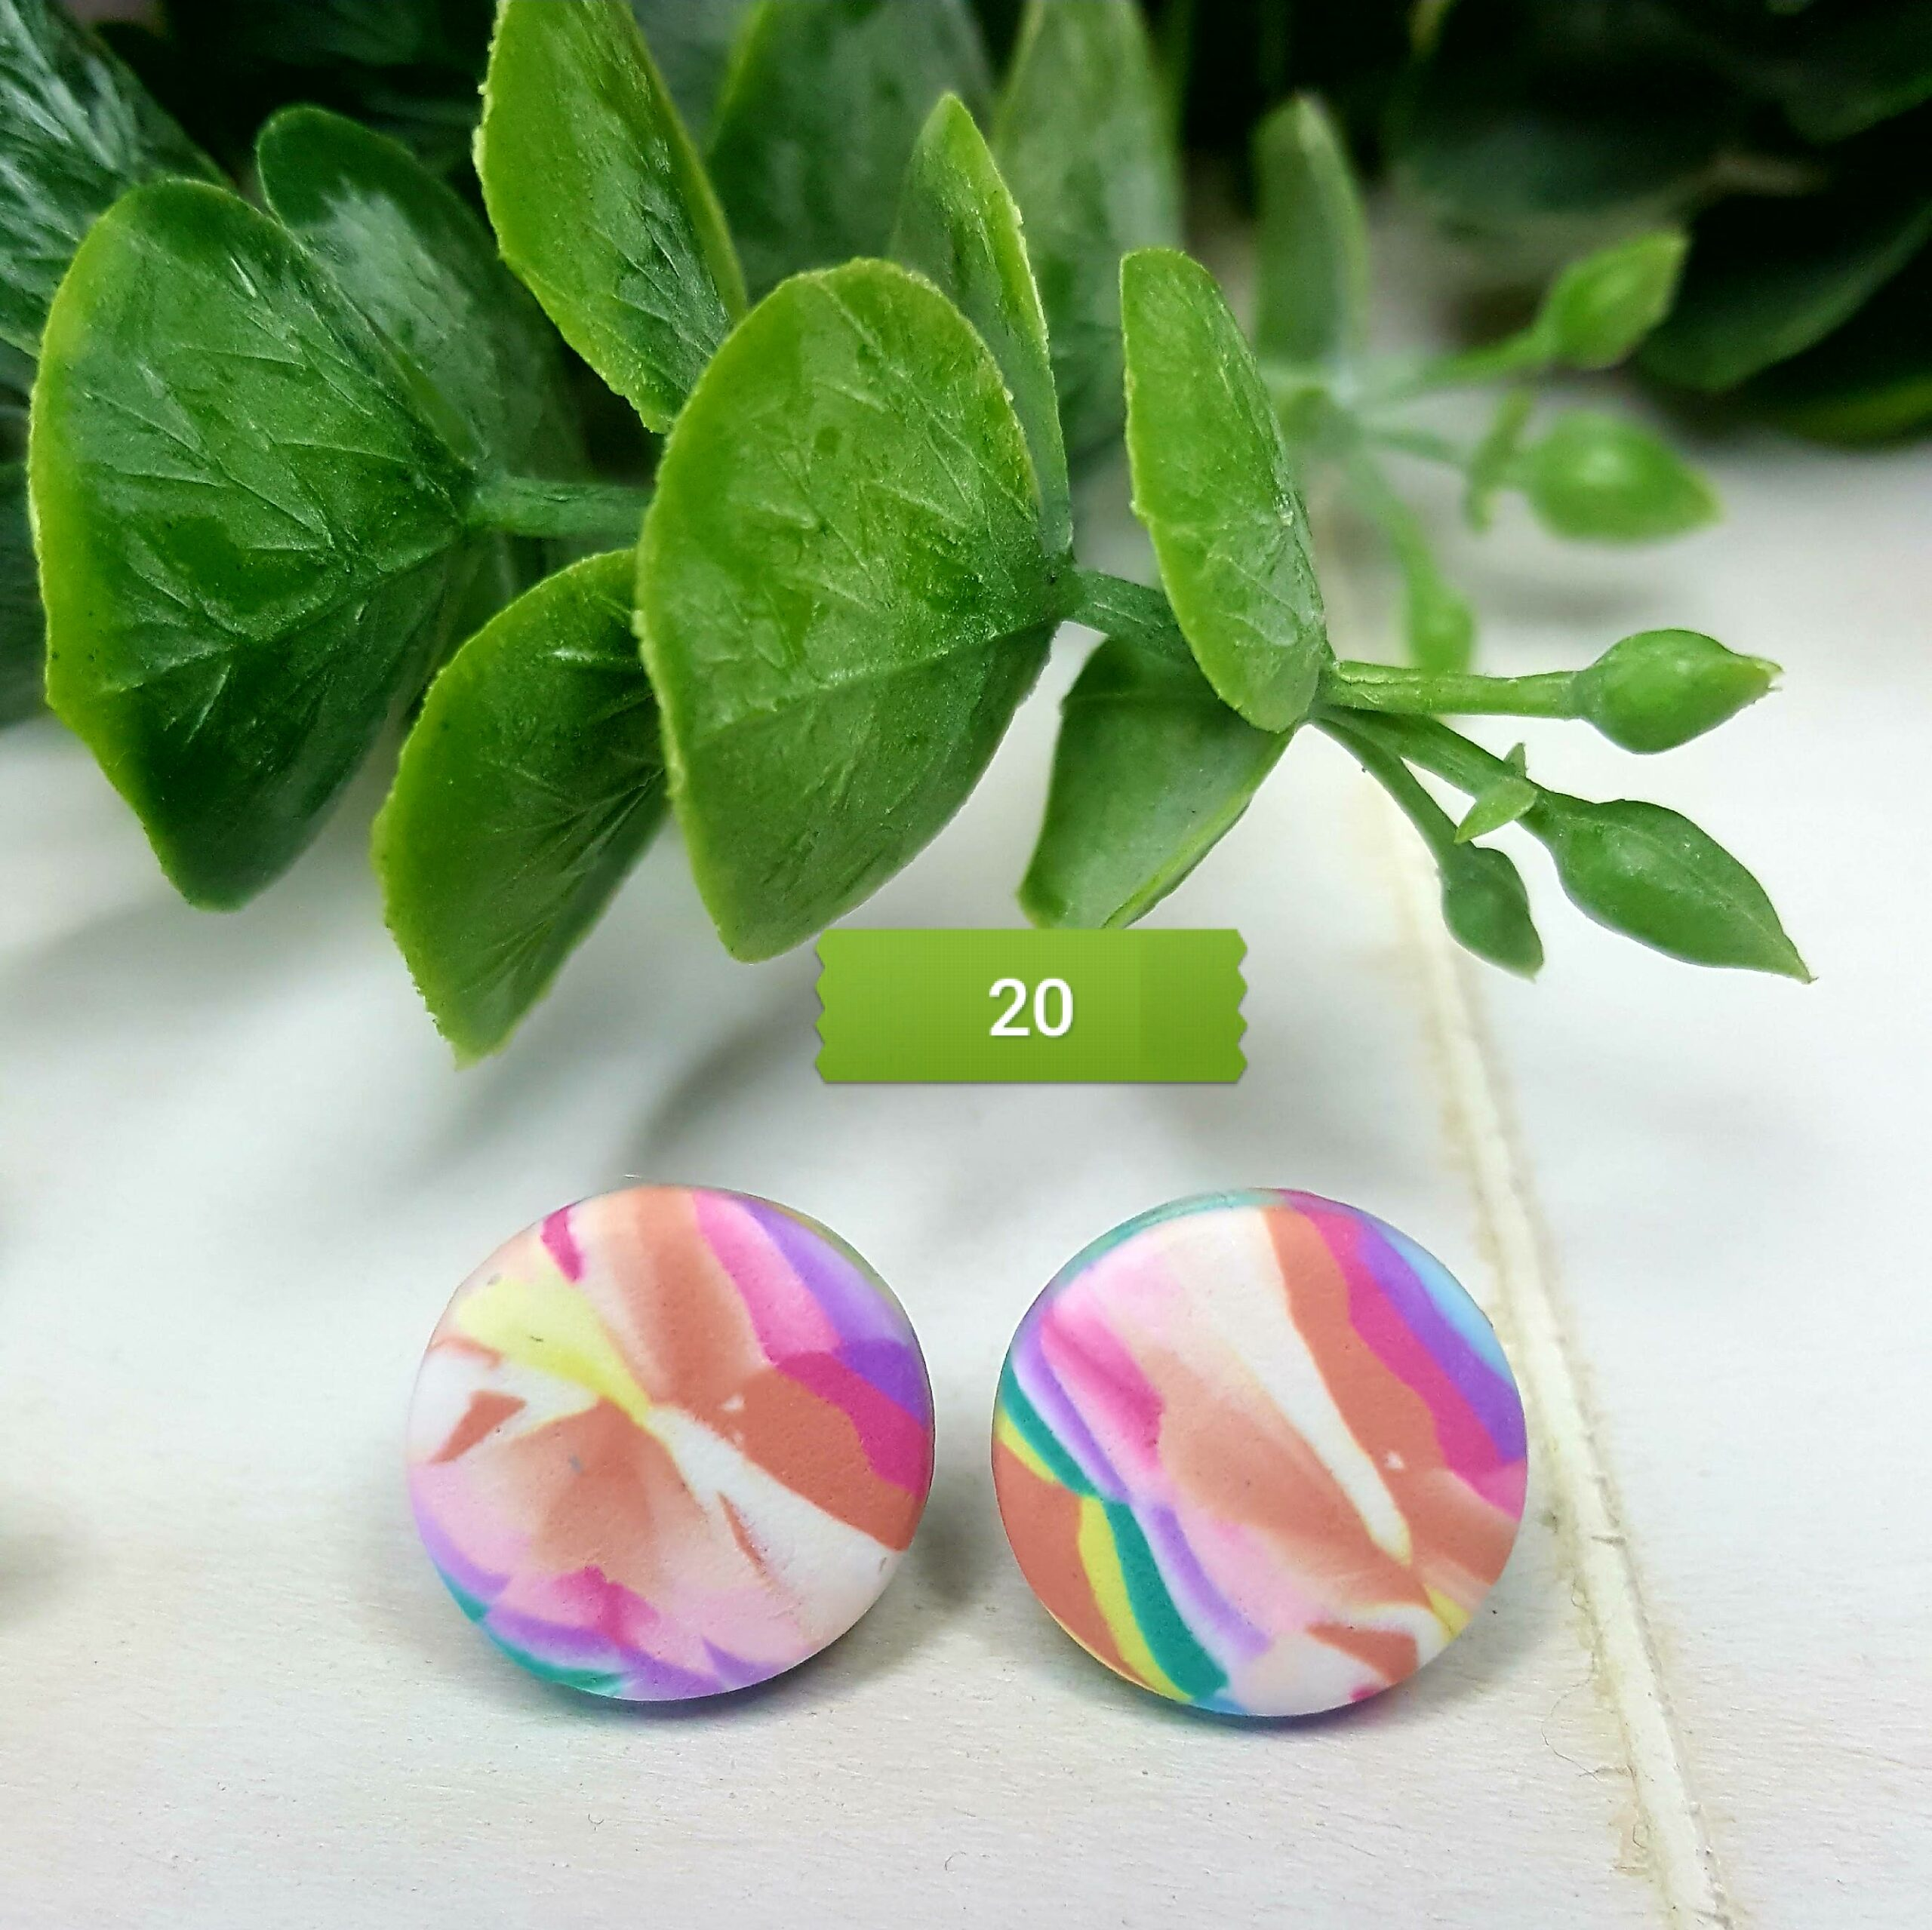 Wirework Designs | Handcrafted chainmaille jewellery and chainmaille products | Tye Dye Stud Earrings | 20210703_090816